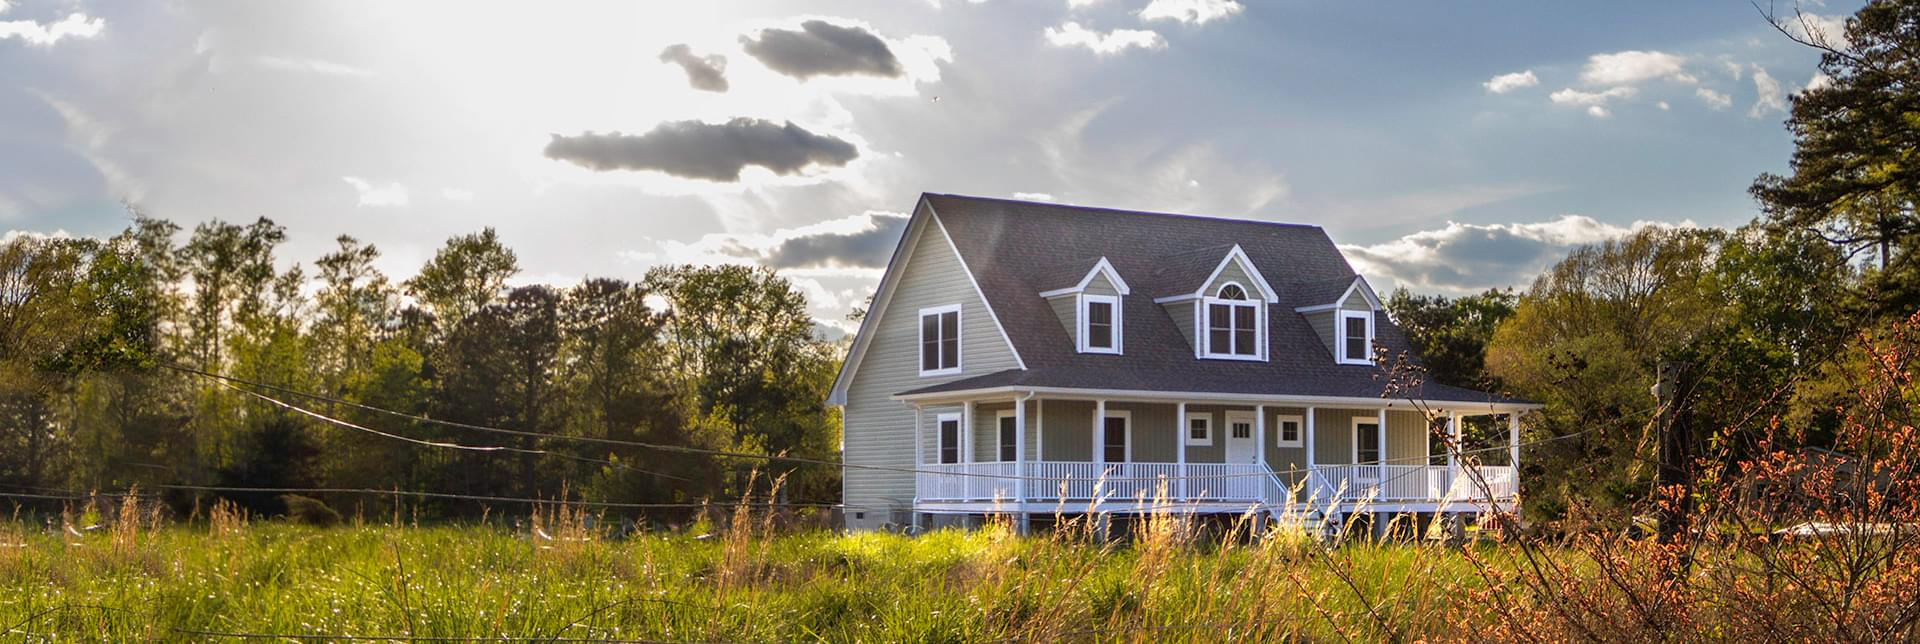 New Homes in Greensville County VA